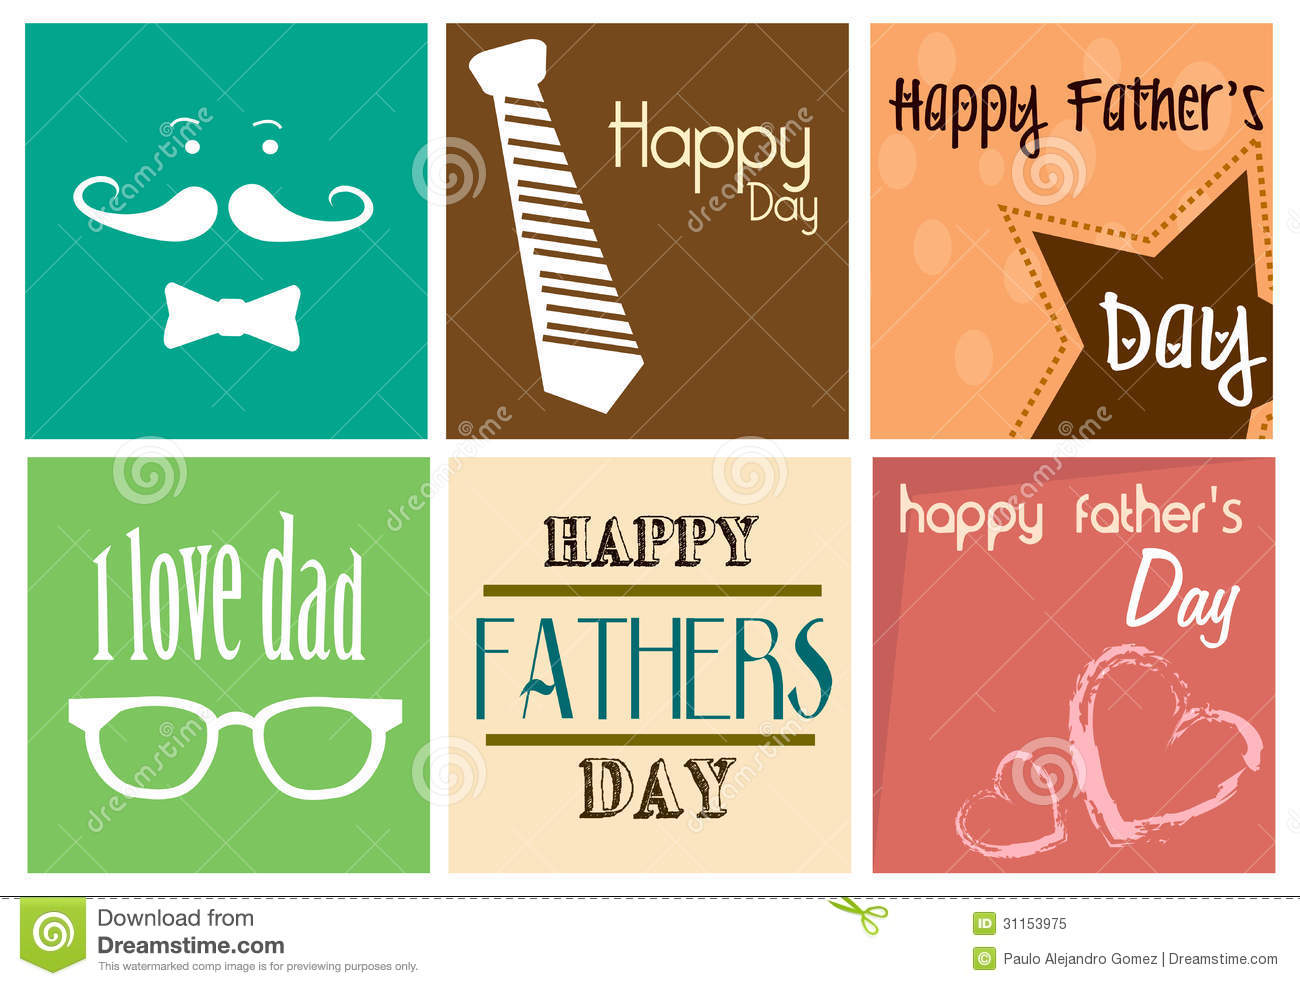 Happy mothers day clipart pictures